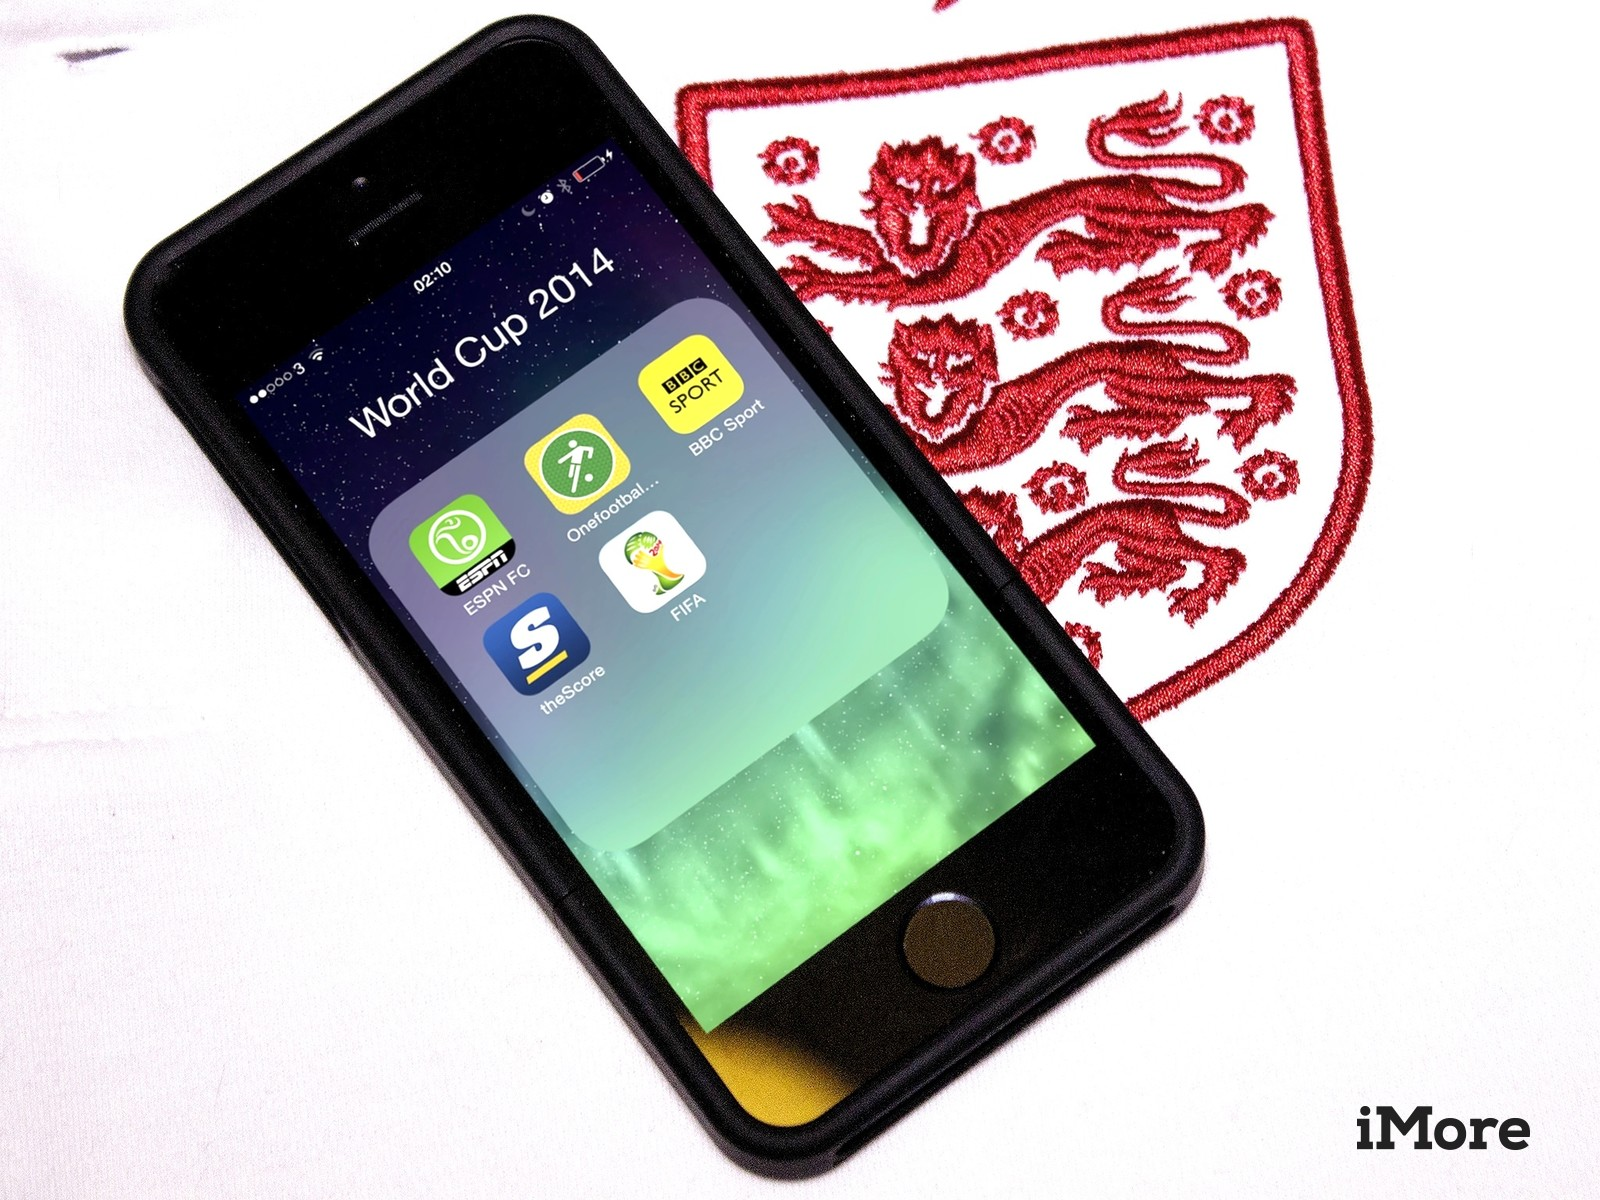 Best World Cup 2014 apps for iPhone and iPad: FIFA, theScore, ESPN